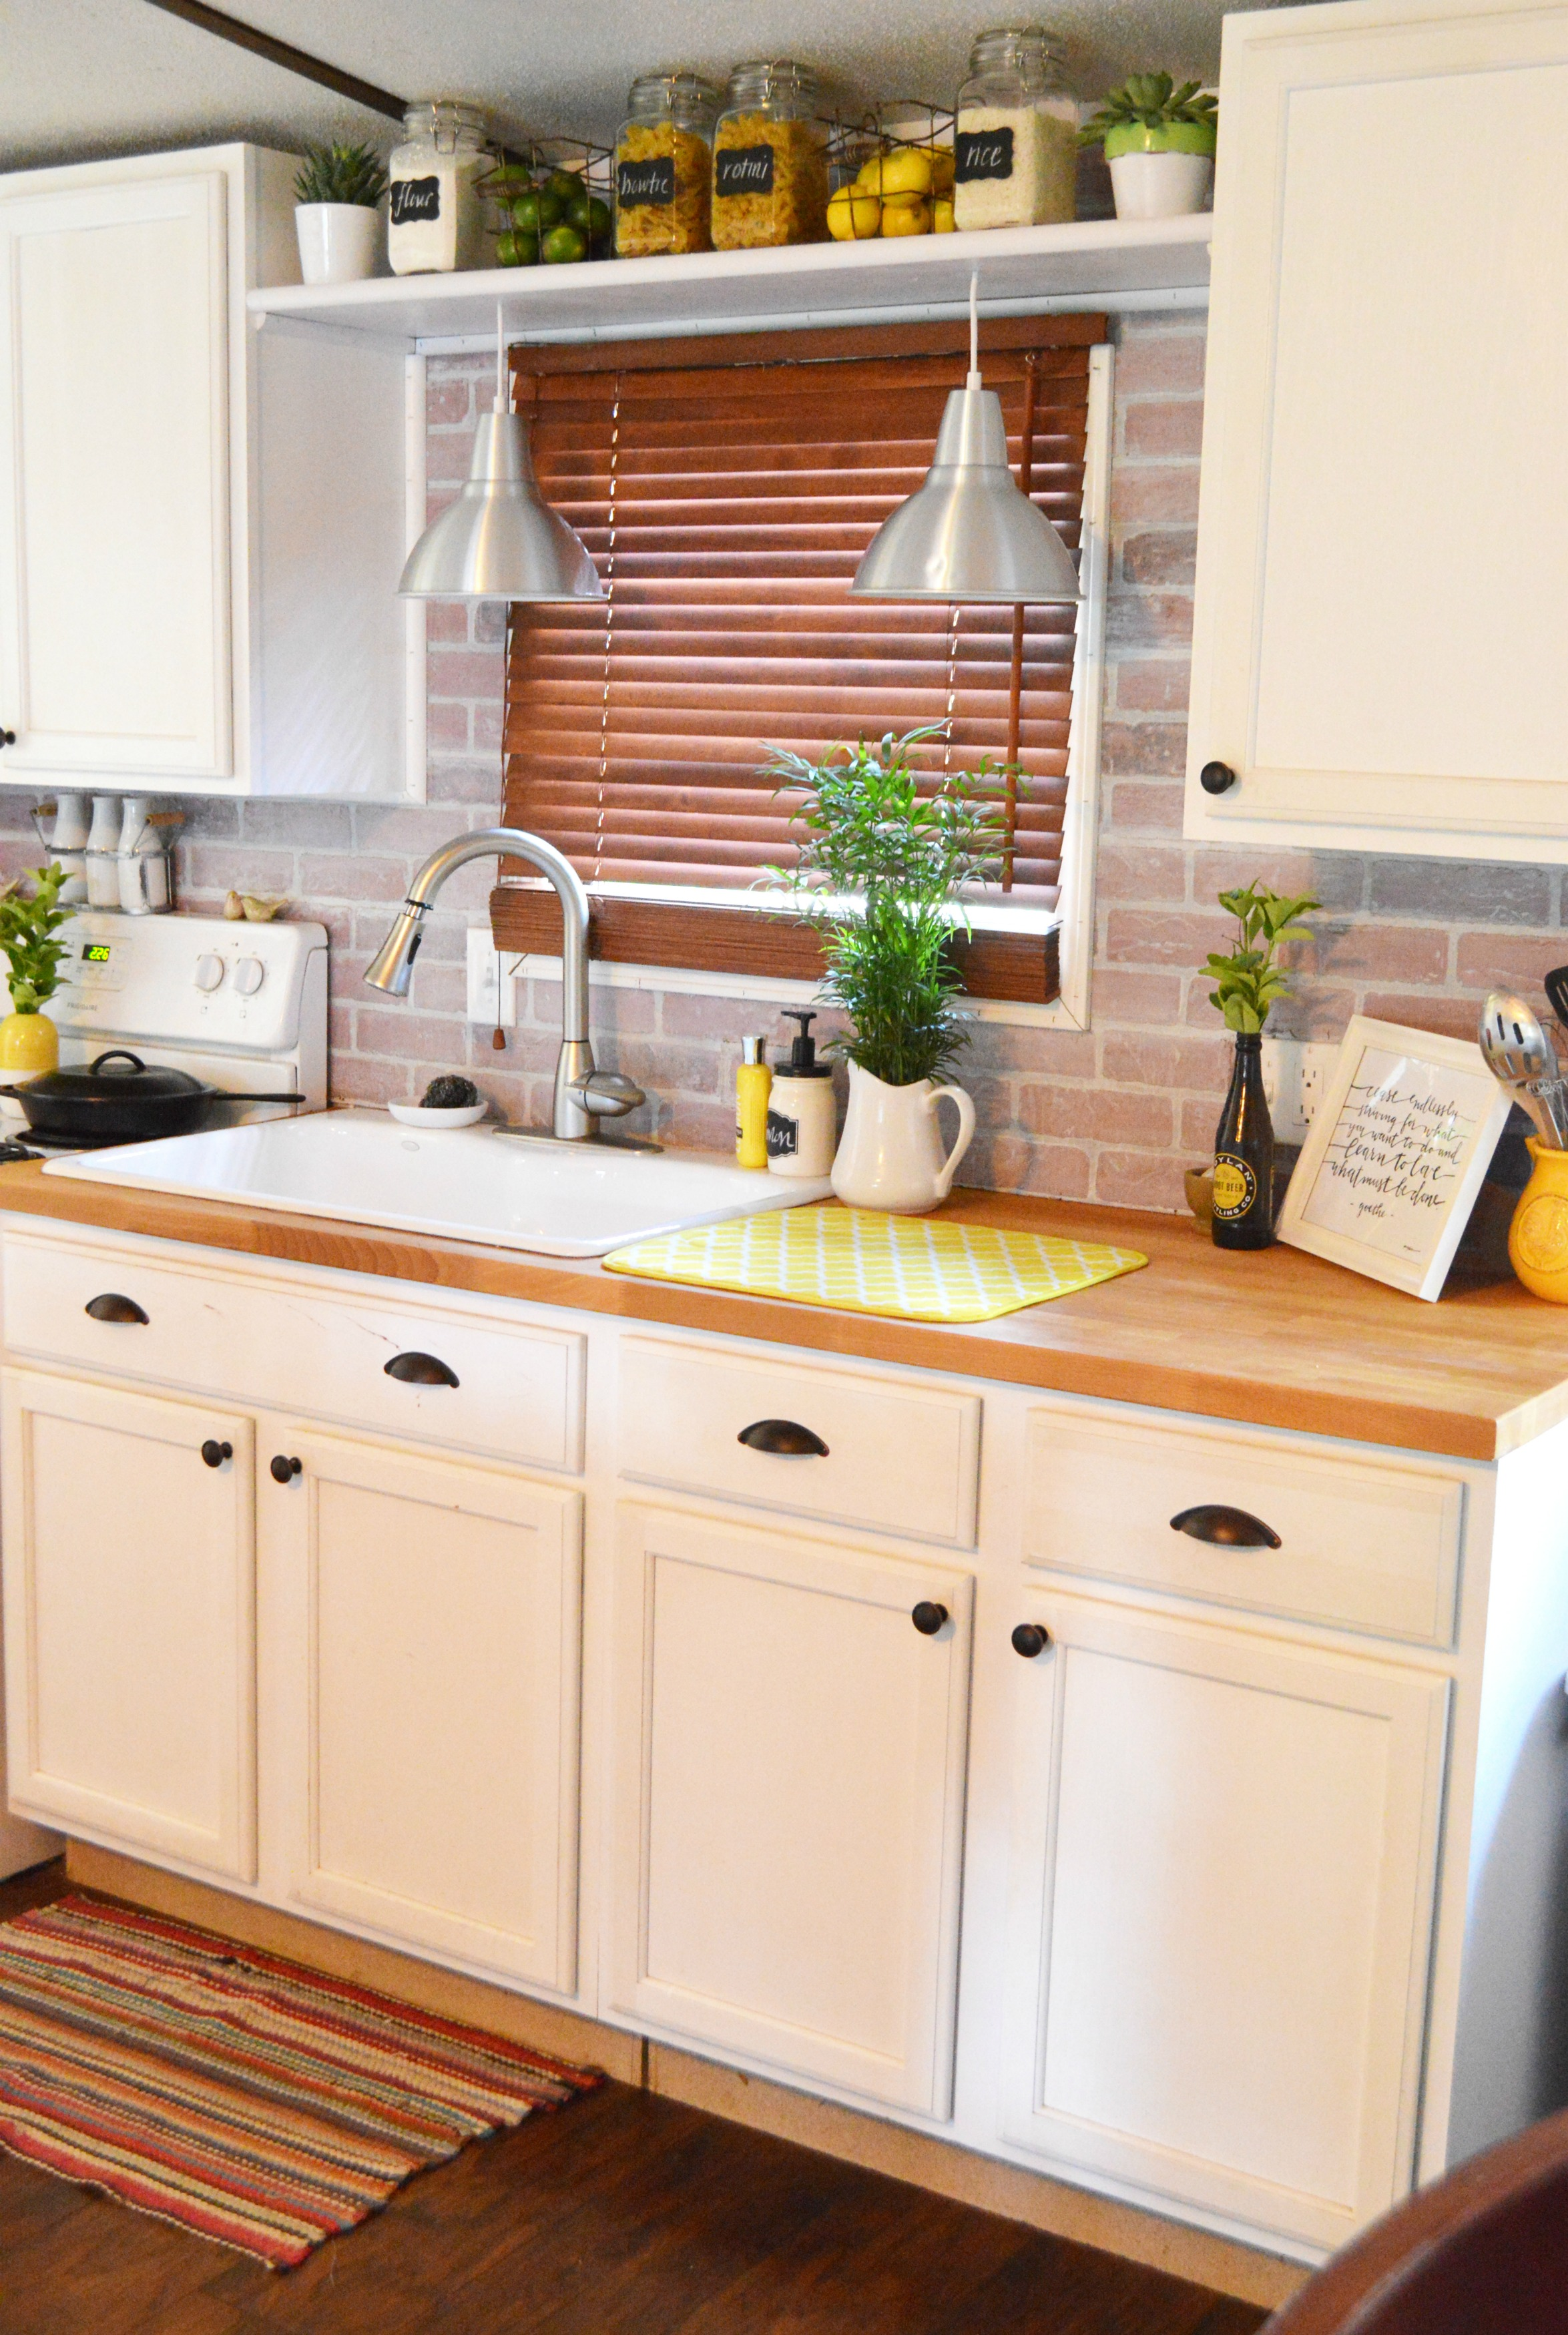 Diy raw brick backsplash